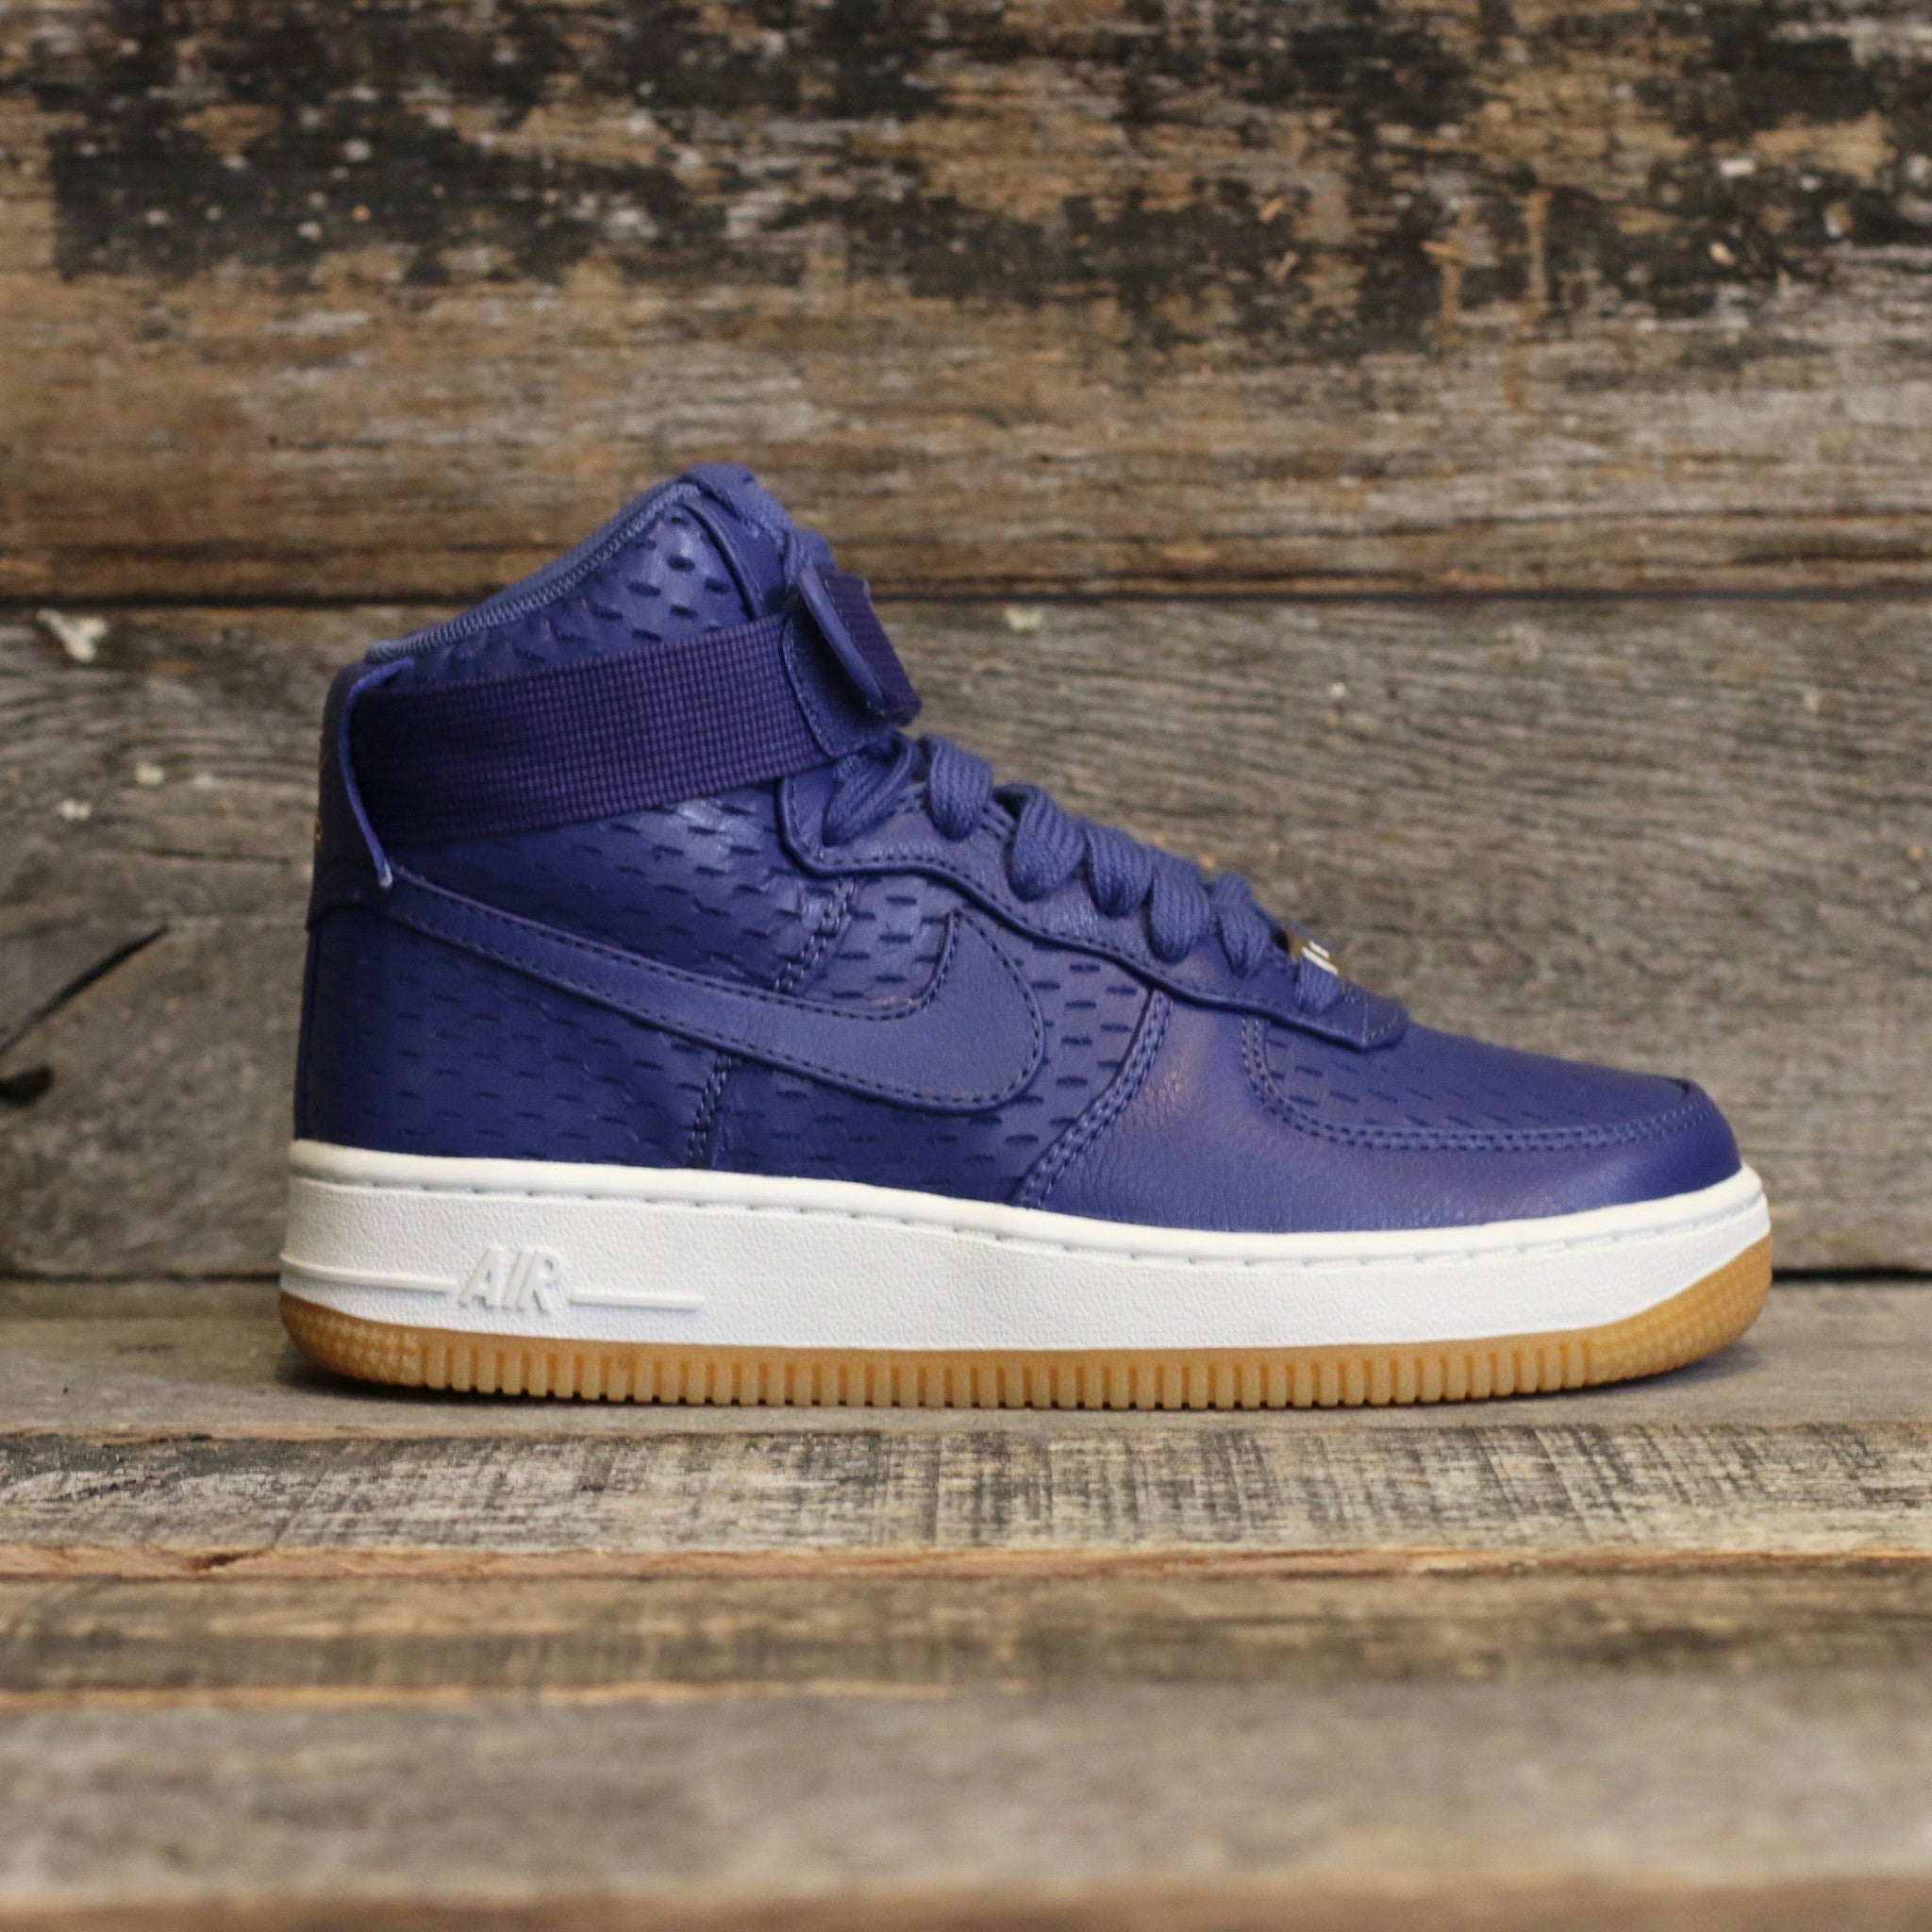 NIKE AIR FORCE 1 HI PRM WOMEN'S